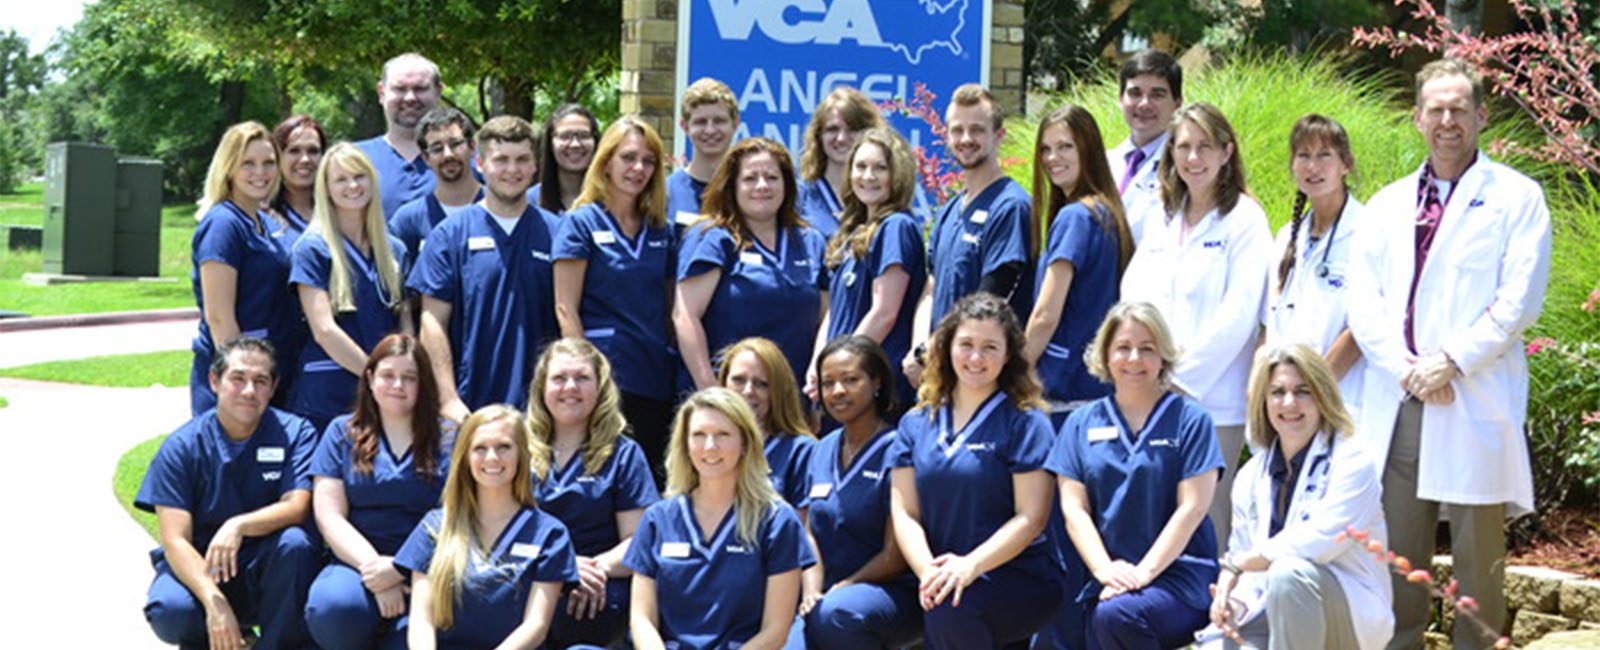 Homepage Team Picture of VCA Angel Animal Hospital